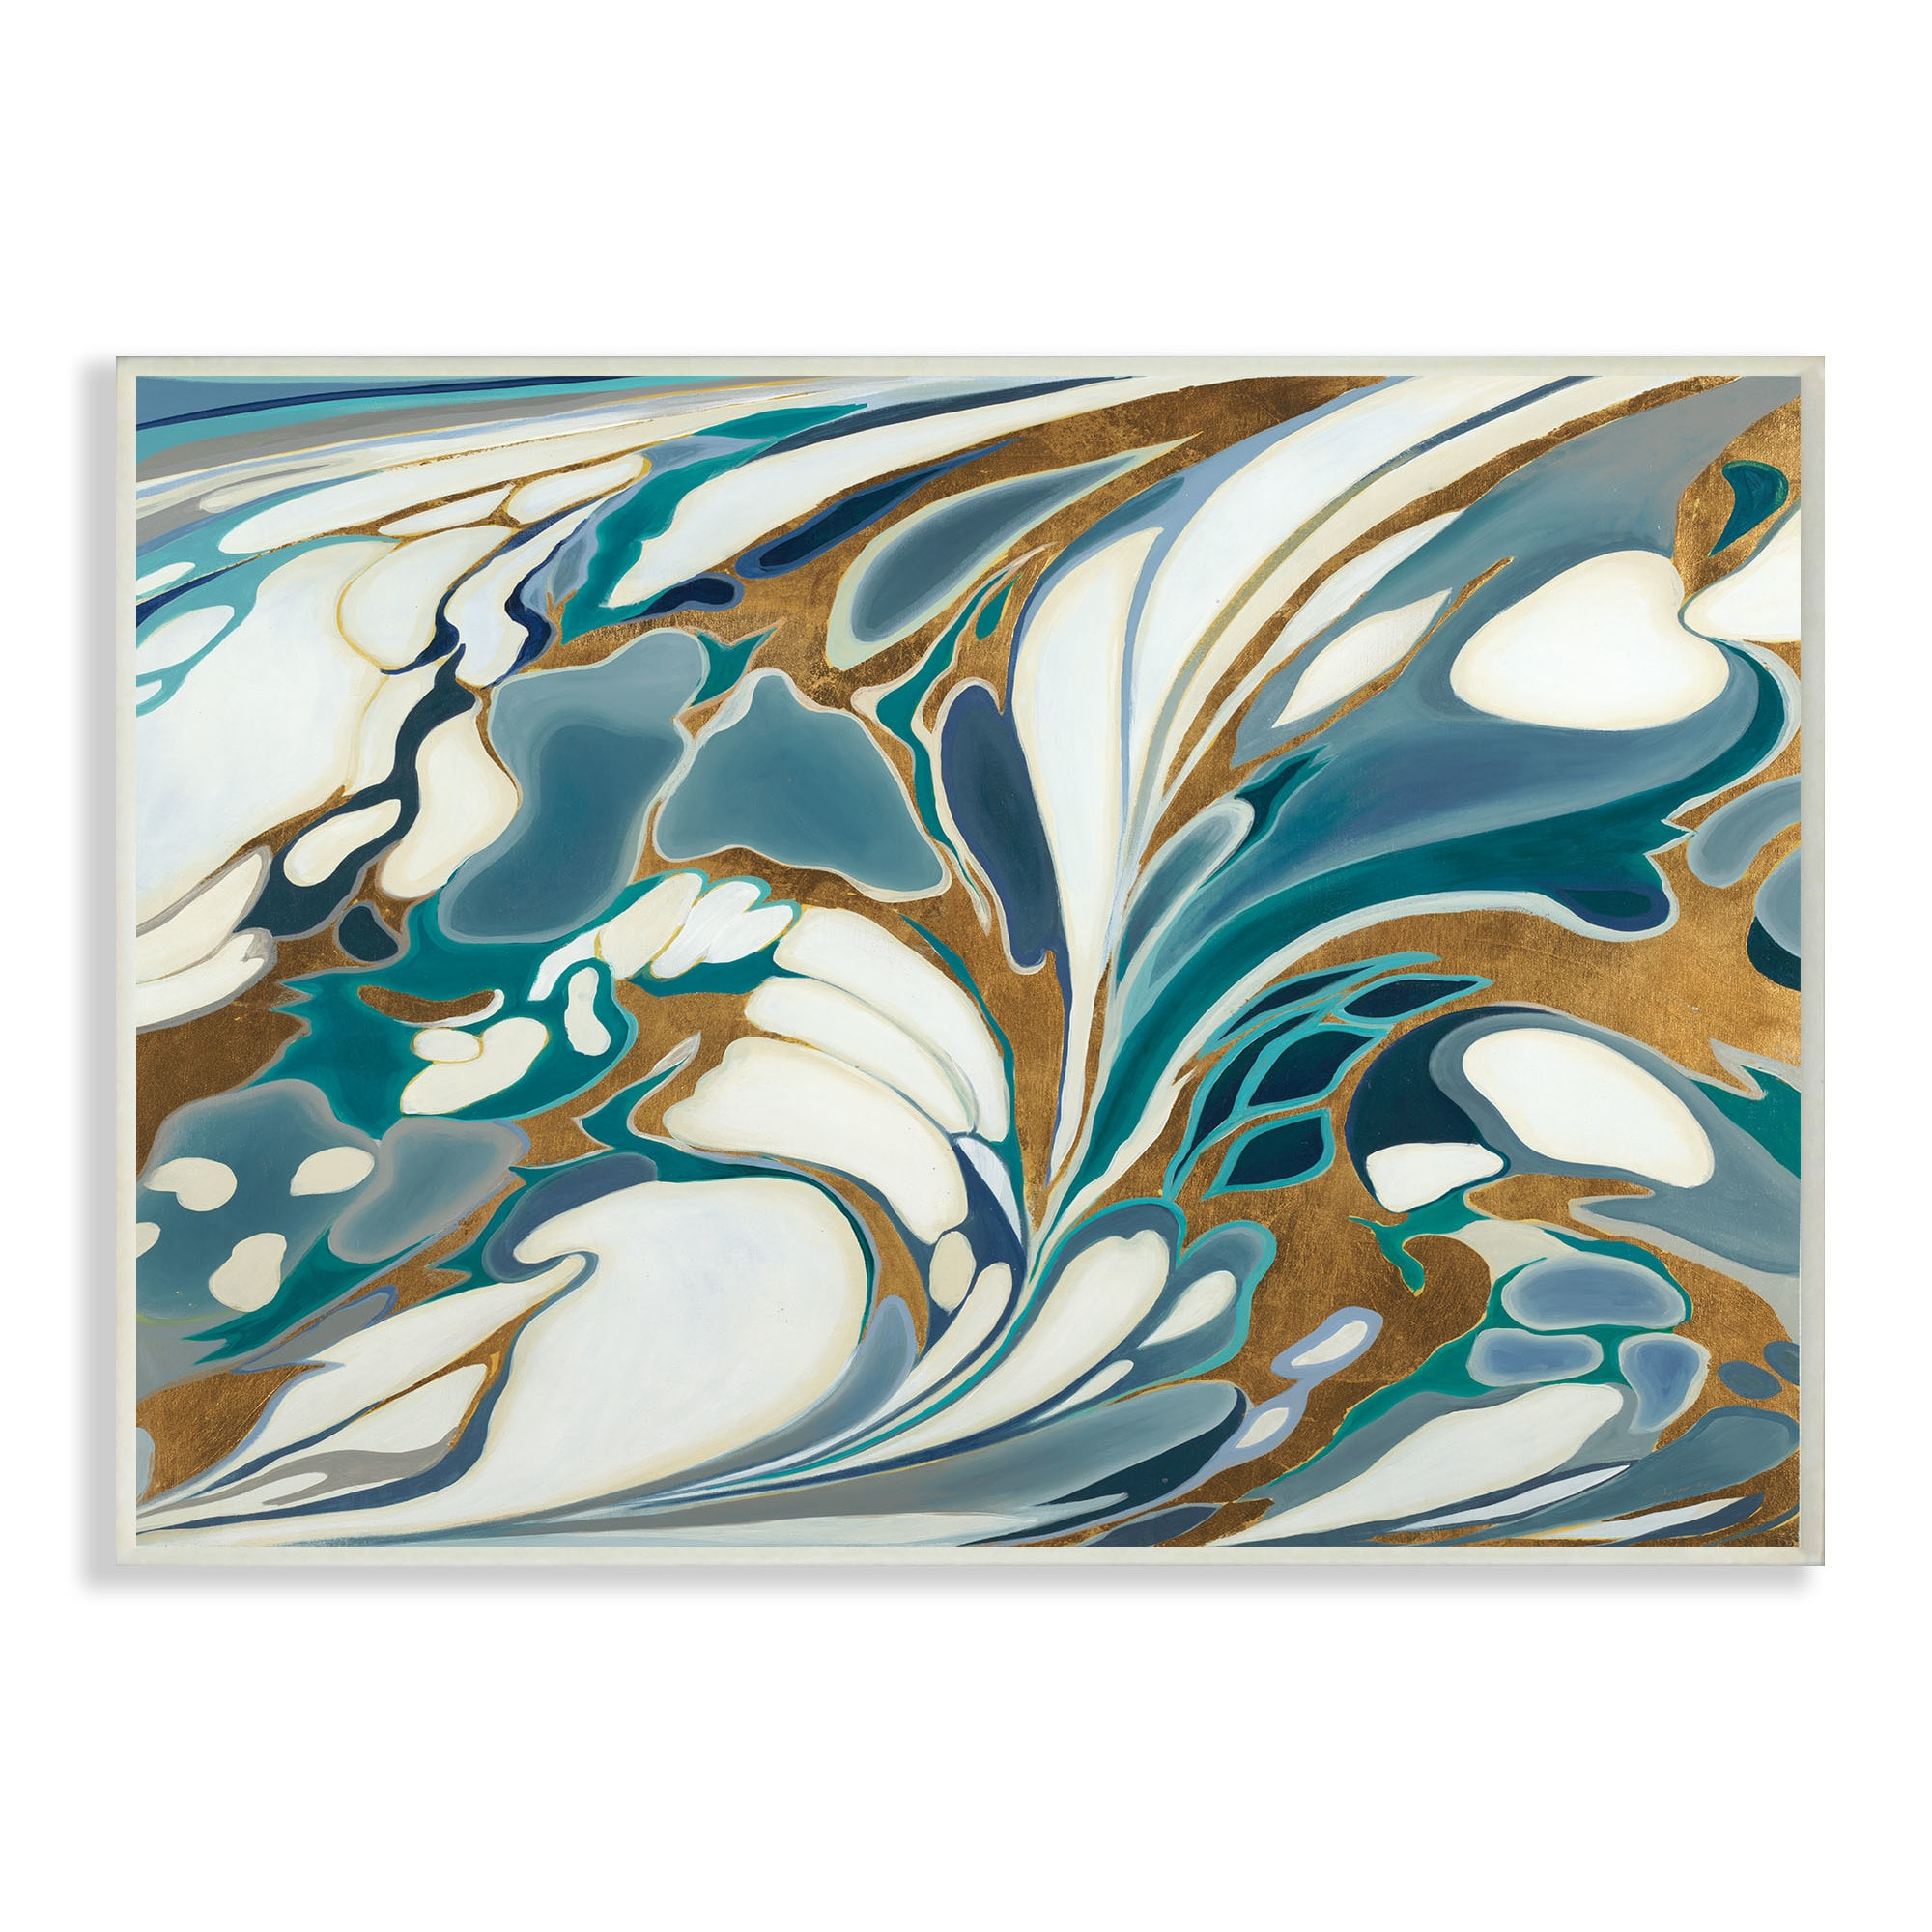 Blue And Gold Water Marble Wall Plaque Art 10 X 15 Overstock 16305128